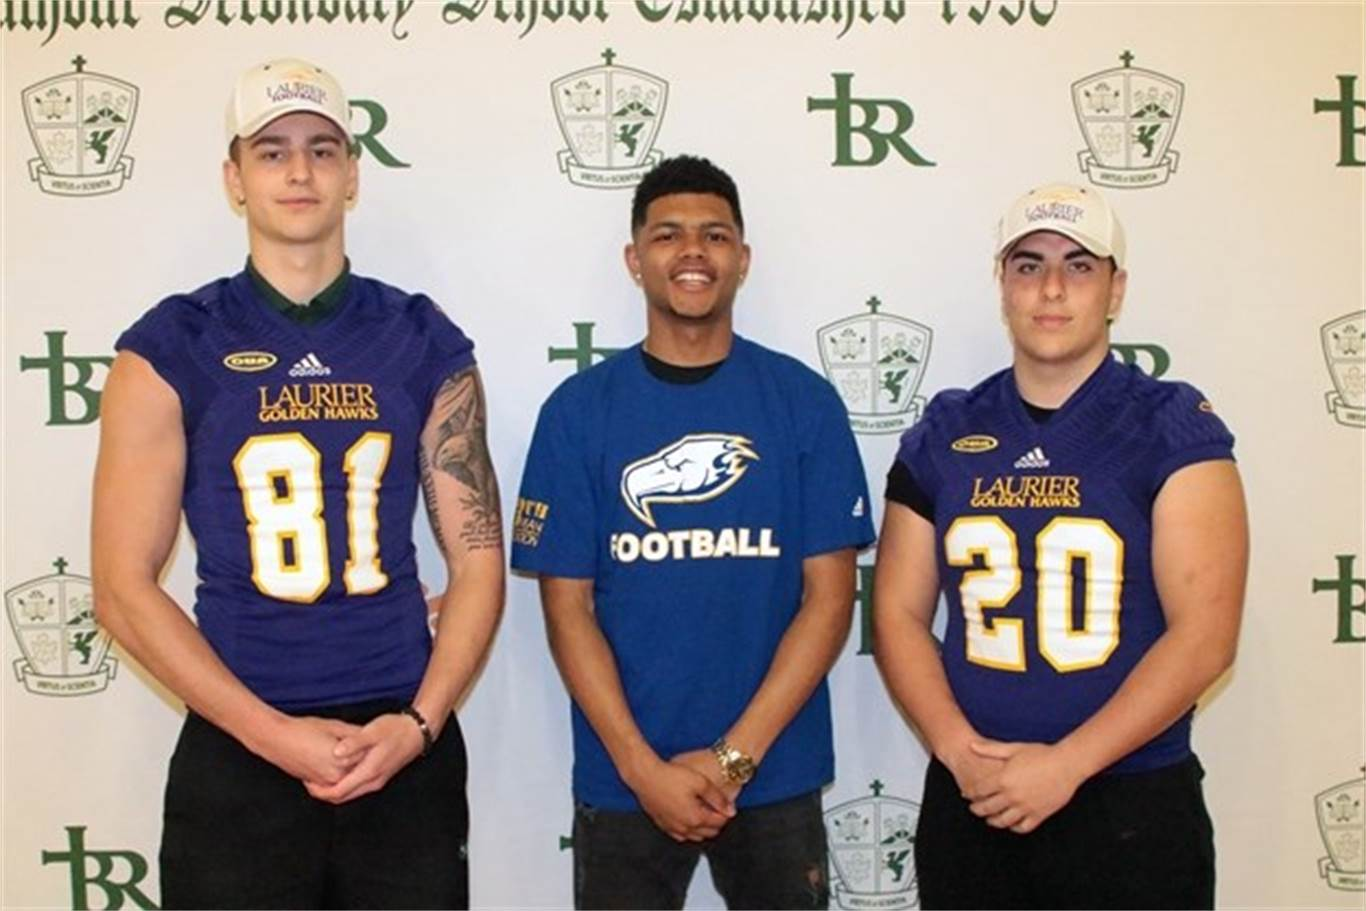 From left, Xavier Masotti, (Laurier), Jacob Patten (University of British Columbia) and Leo Hernandez, (Laurier) showed off the new team colours they will be wearing as U Sports football players this fall. Photo by Mike Pearson/Metroland.